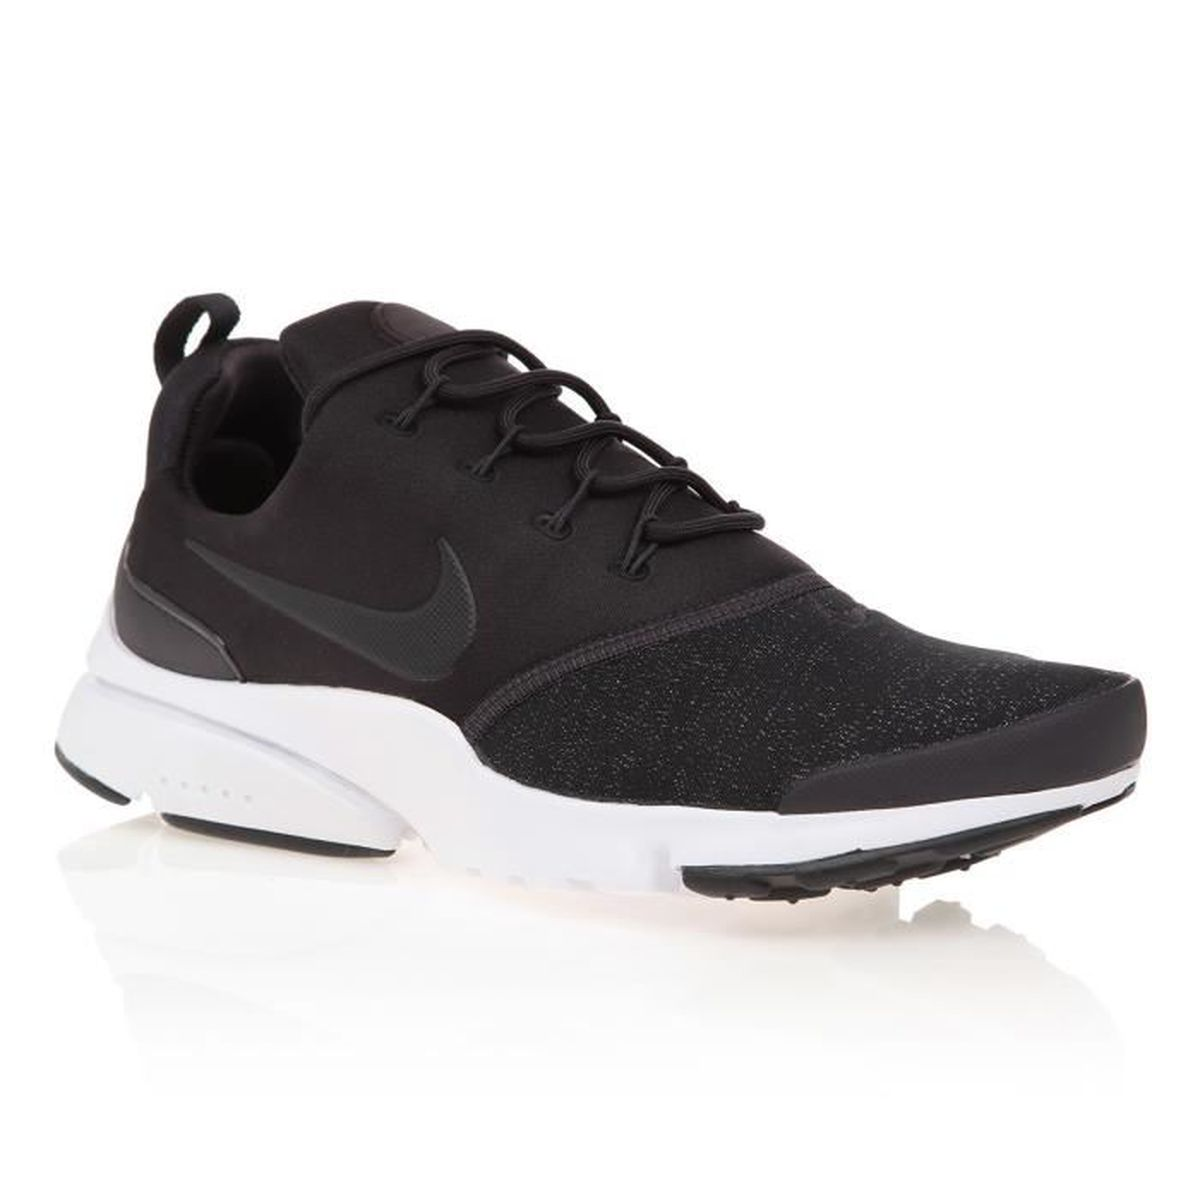 new arrival a23d7 0b519 Nike presto fly - Achat   Vente pas cher